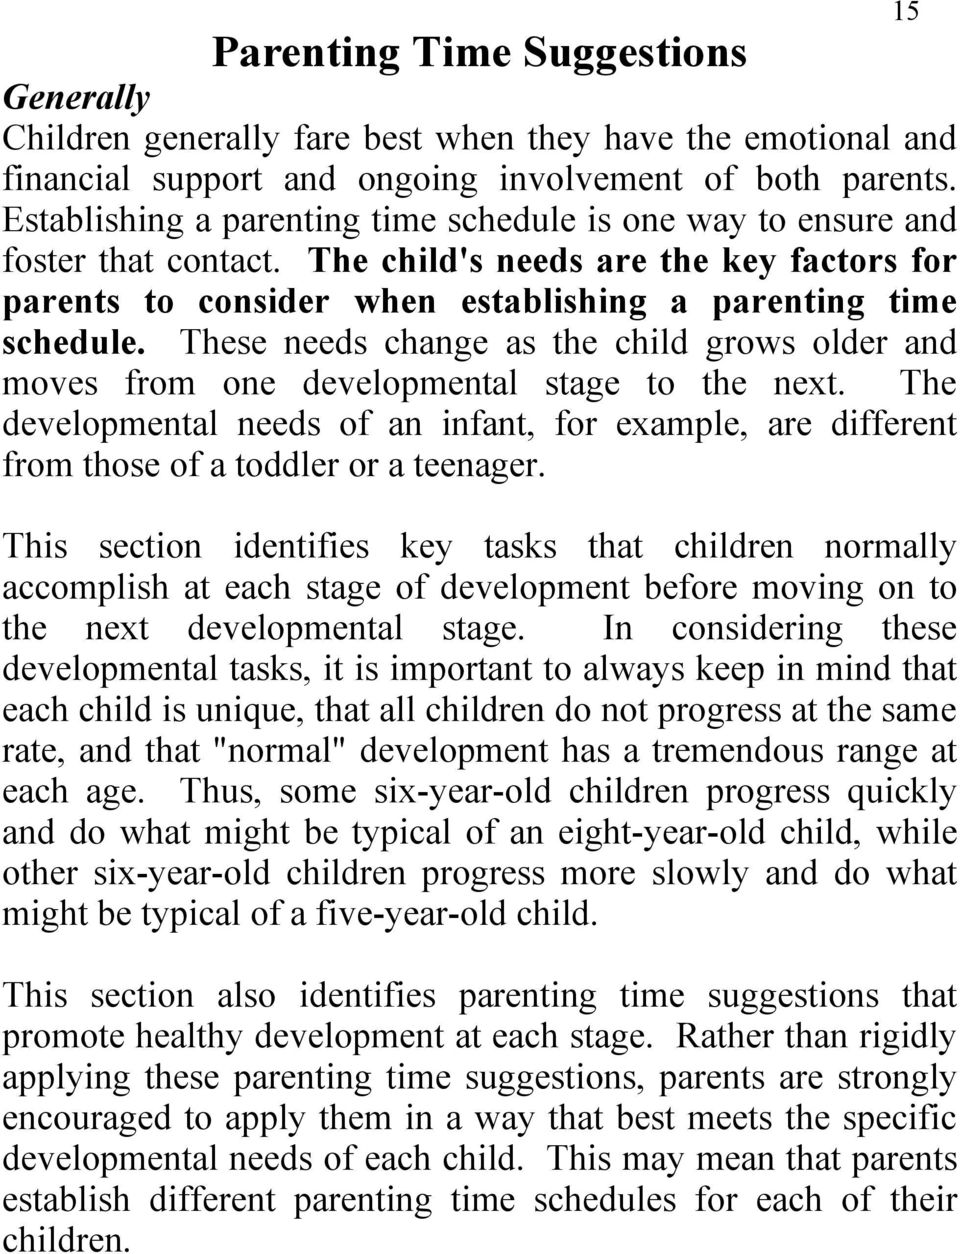 These needs change as the child grows older and moves from one developmental stage to the next. The developmental needs of an infant, for example, are different from those of a toddler or a teenager.